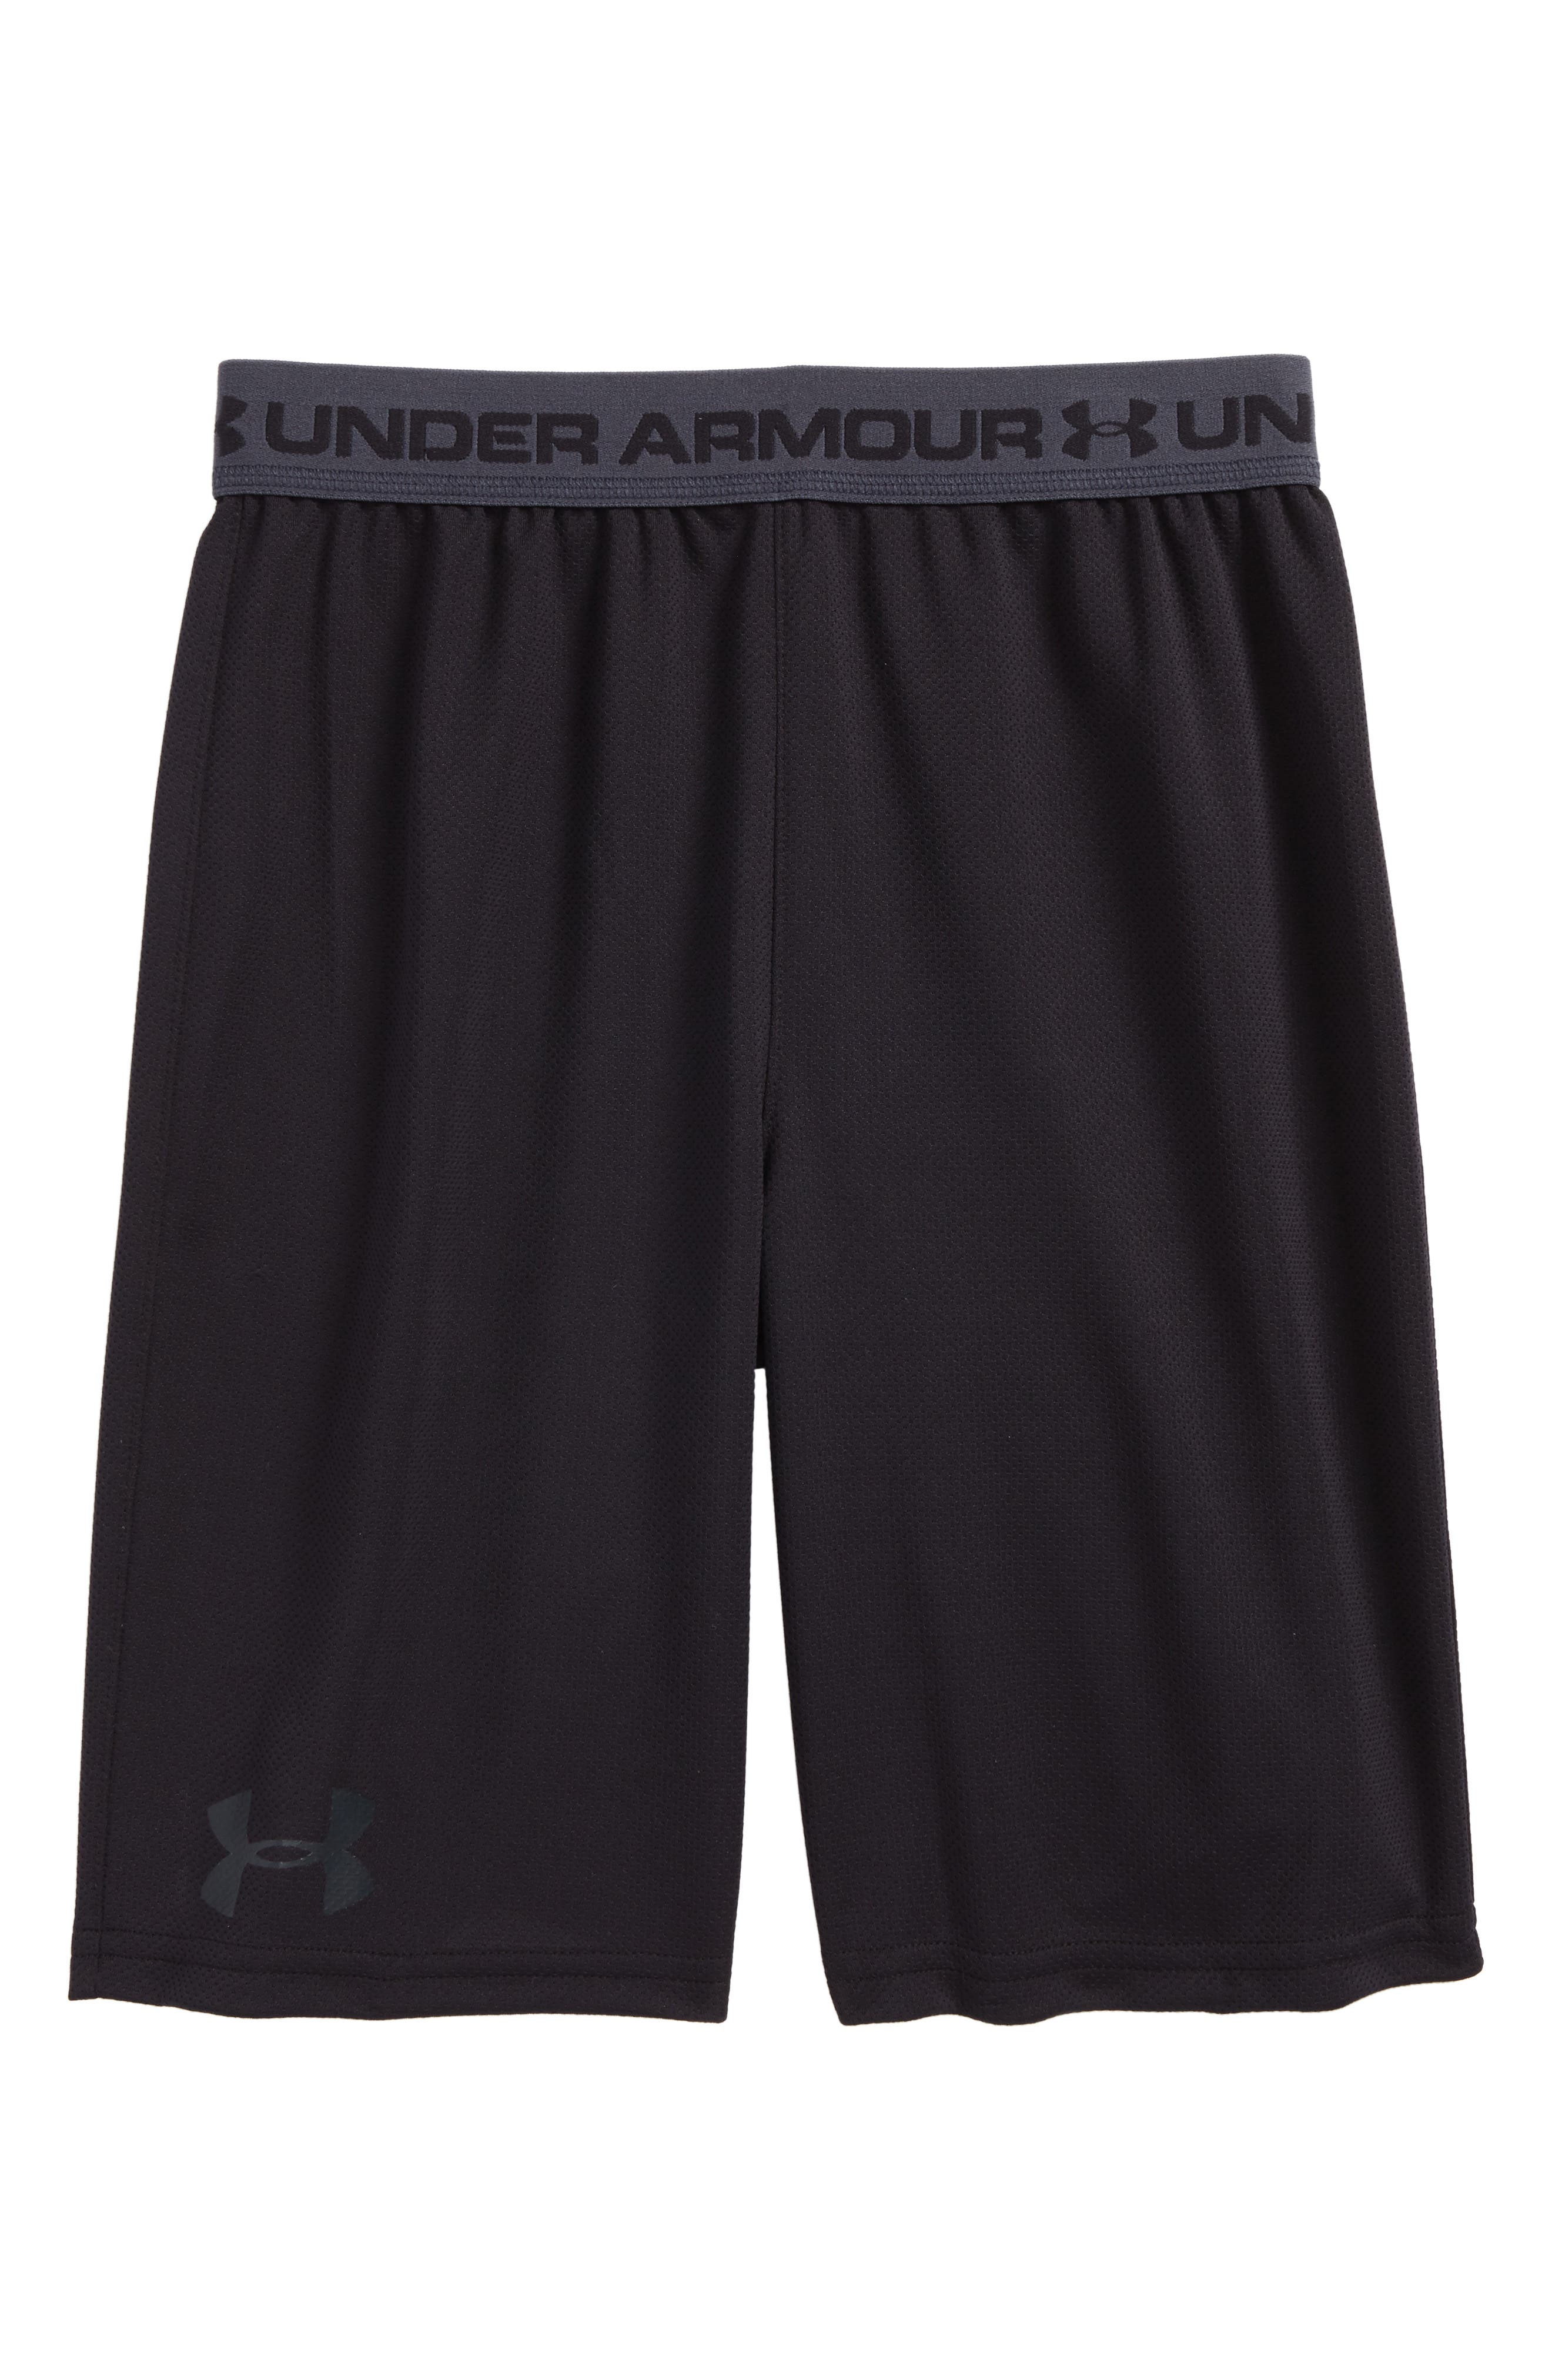 Tech Prototype HeatGear<sup>®</sup> Shorts,                         Main,                         color, BLACK/ STEALTH GRAY